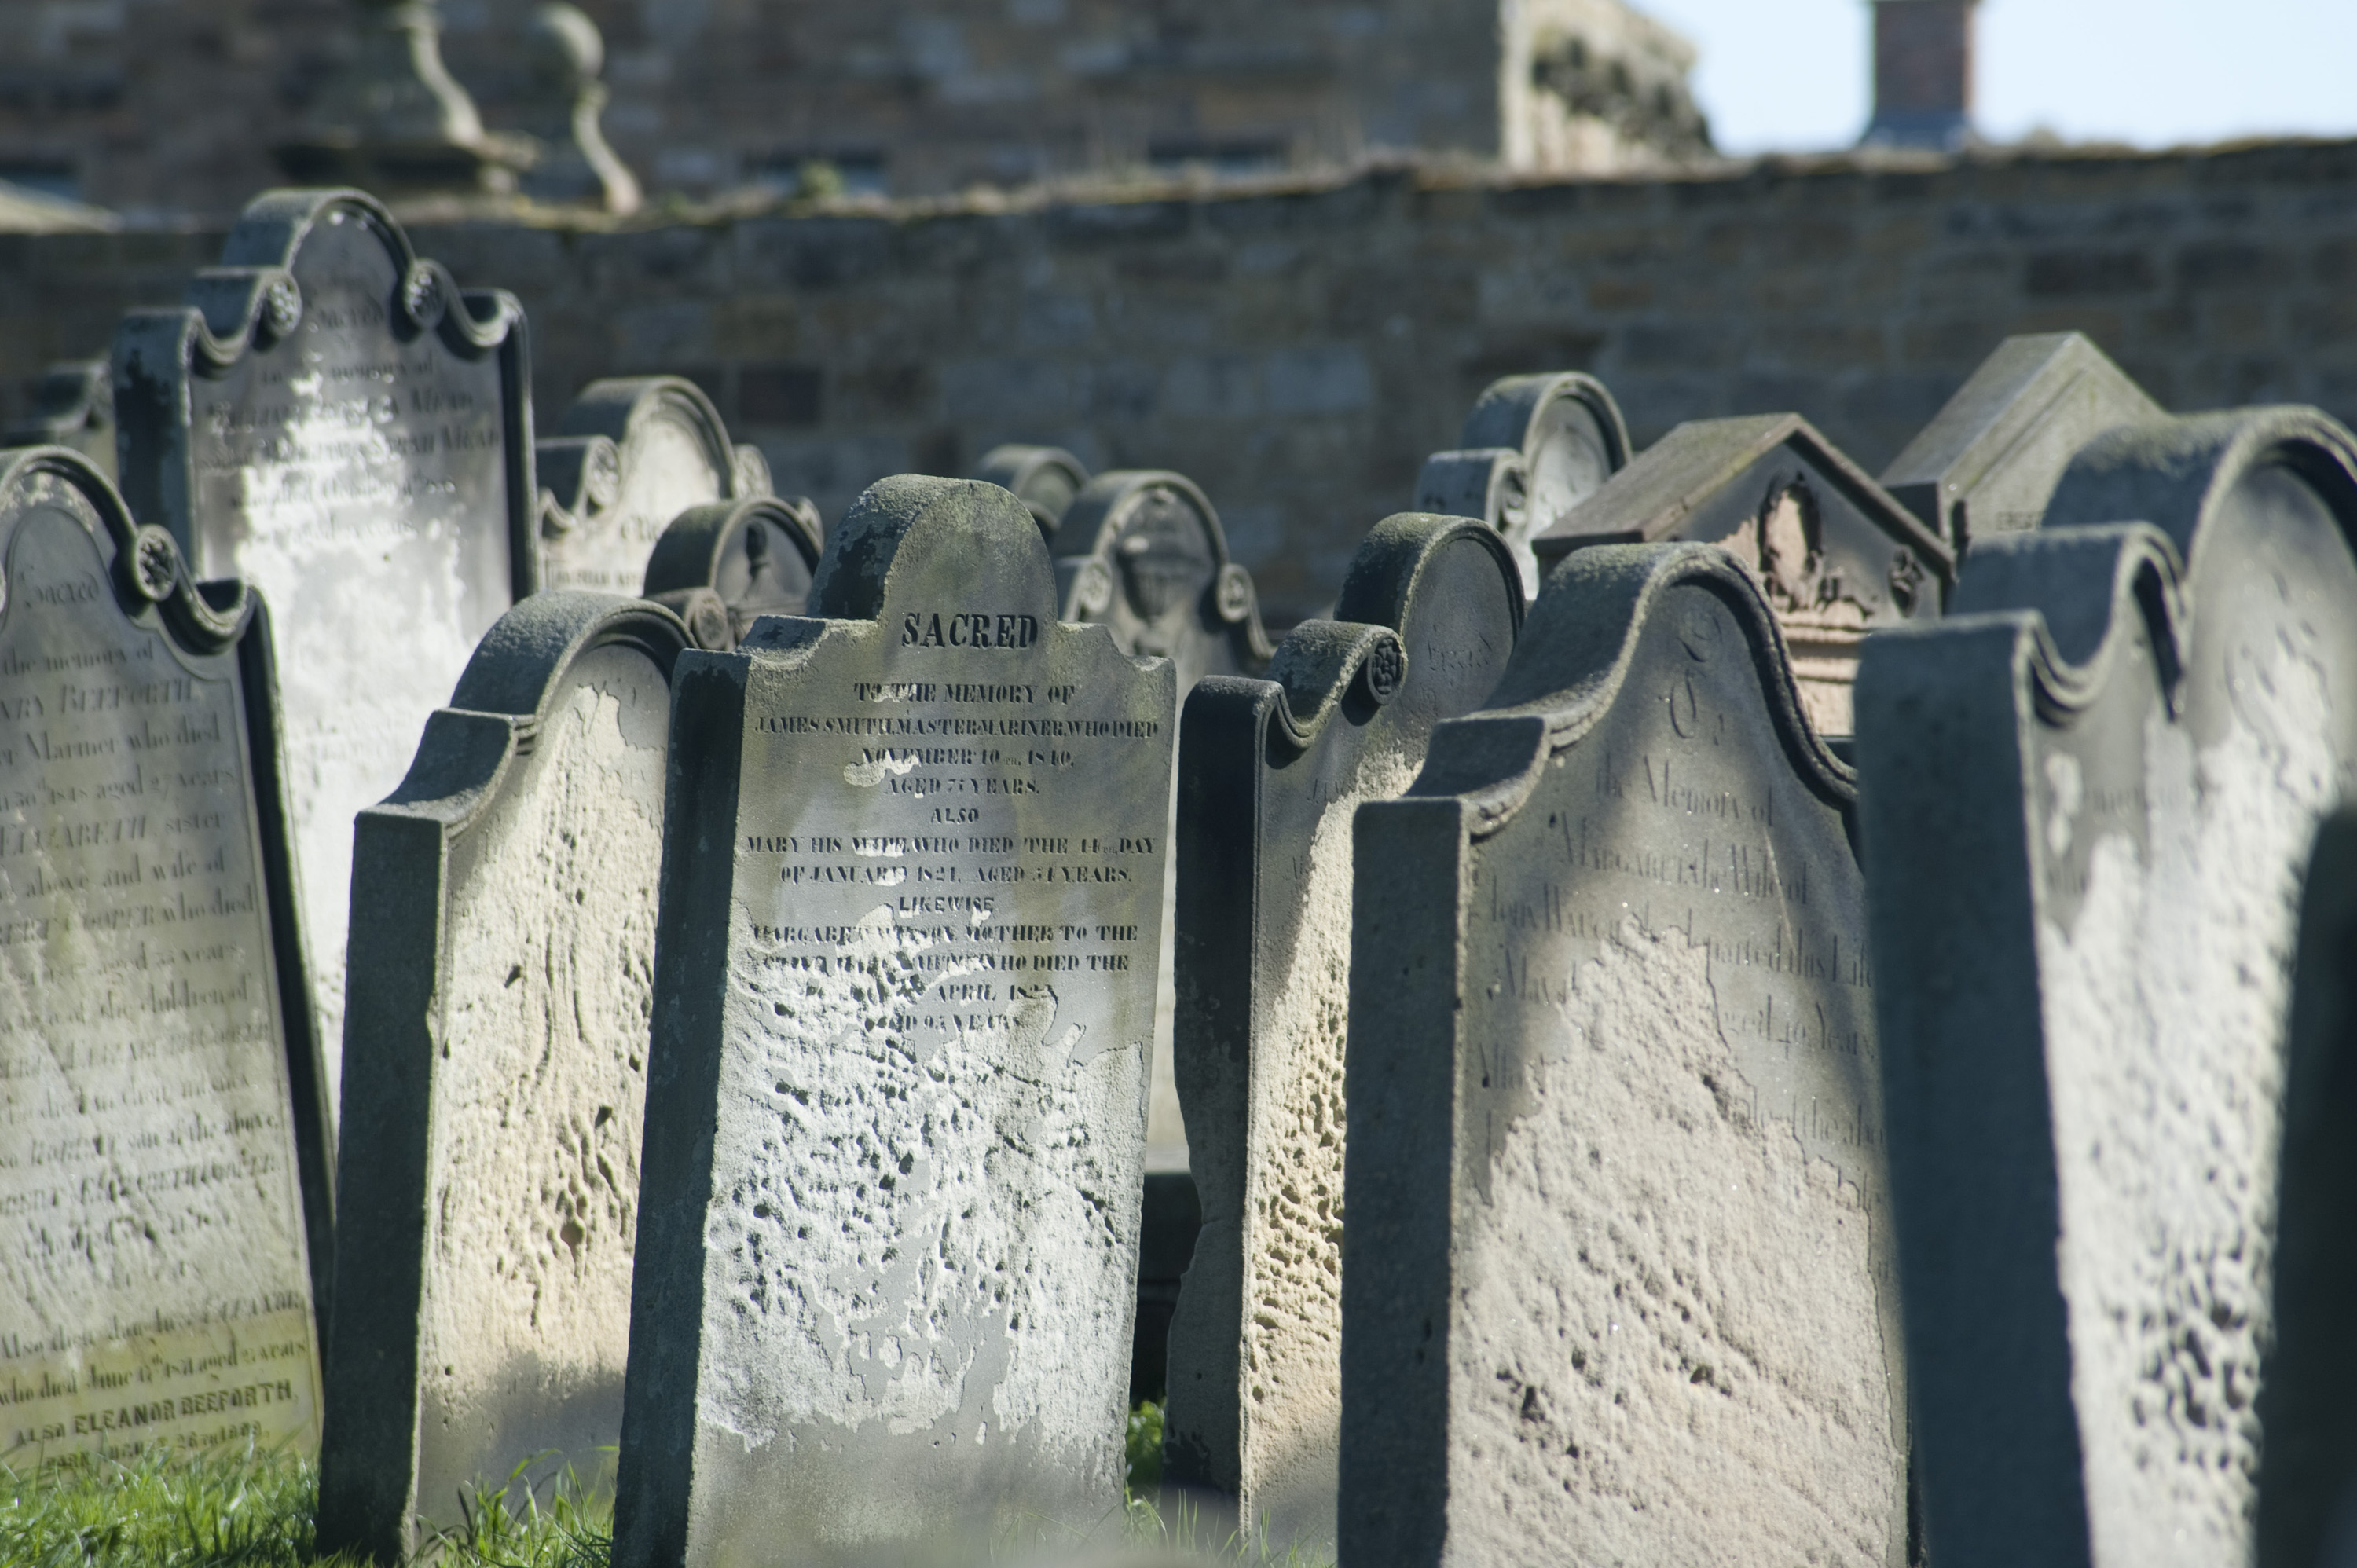 a grave yard full of historic old weathered headstones